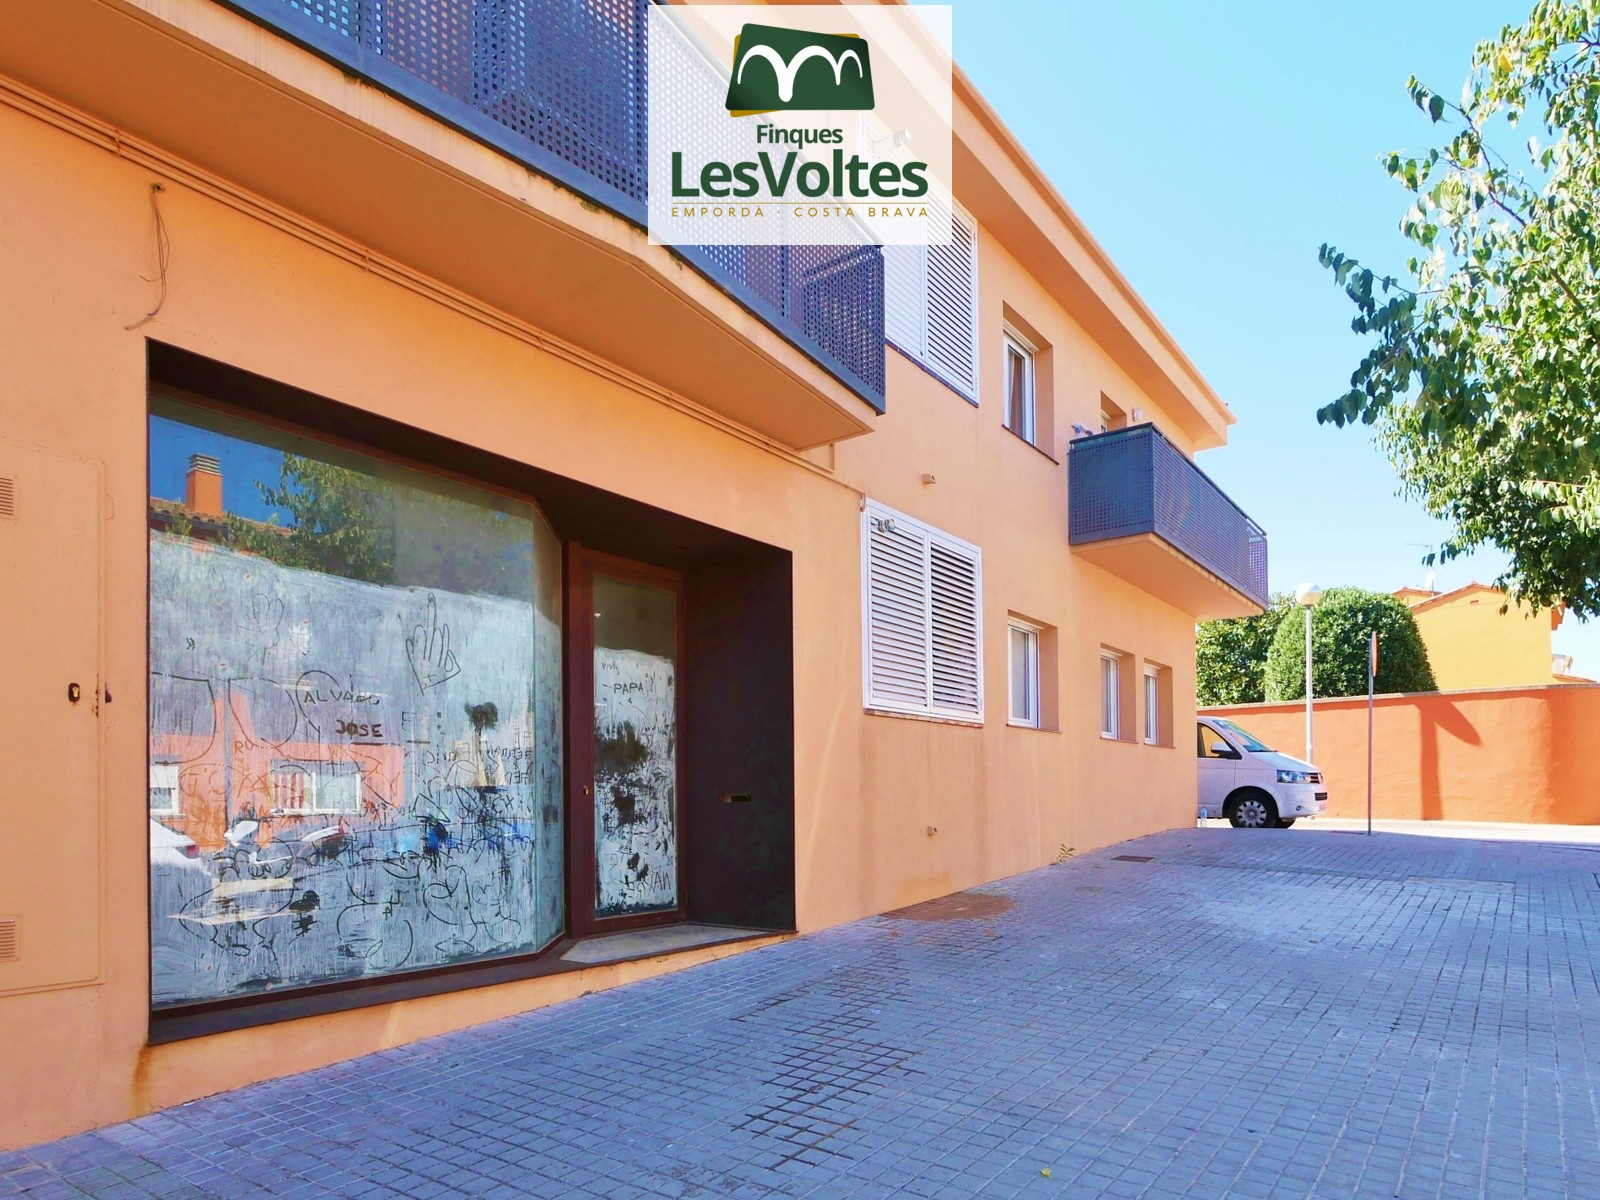 Commercial premises on the ground floor for sale in Palafrugell.